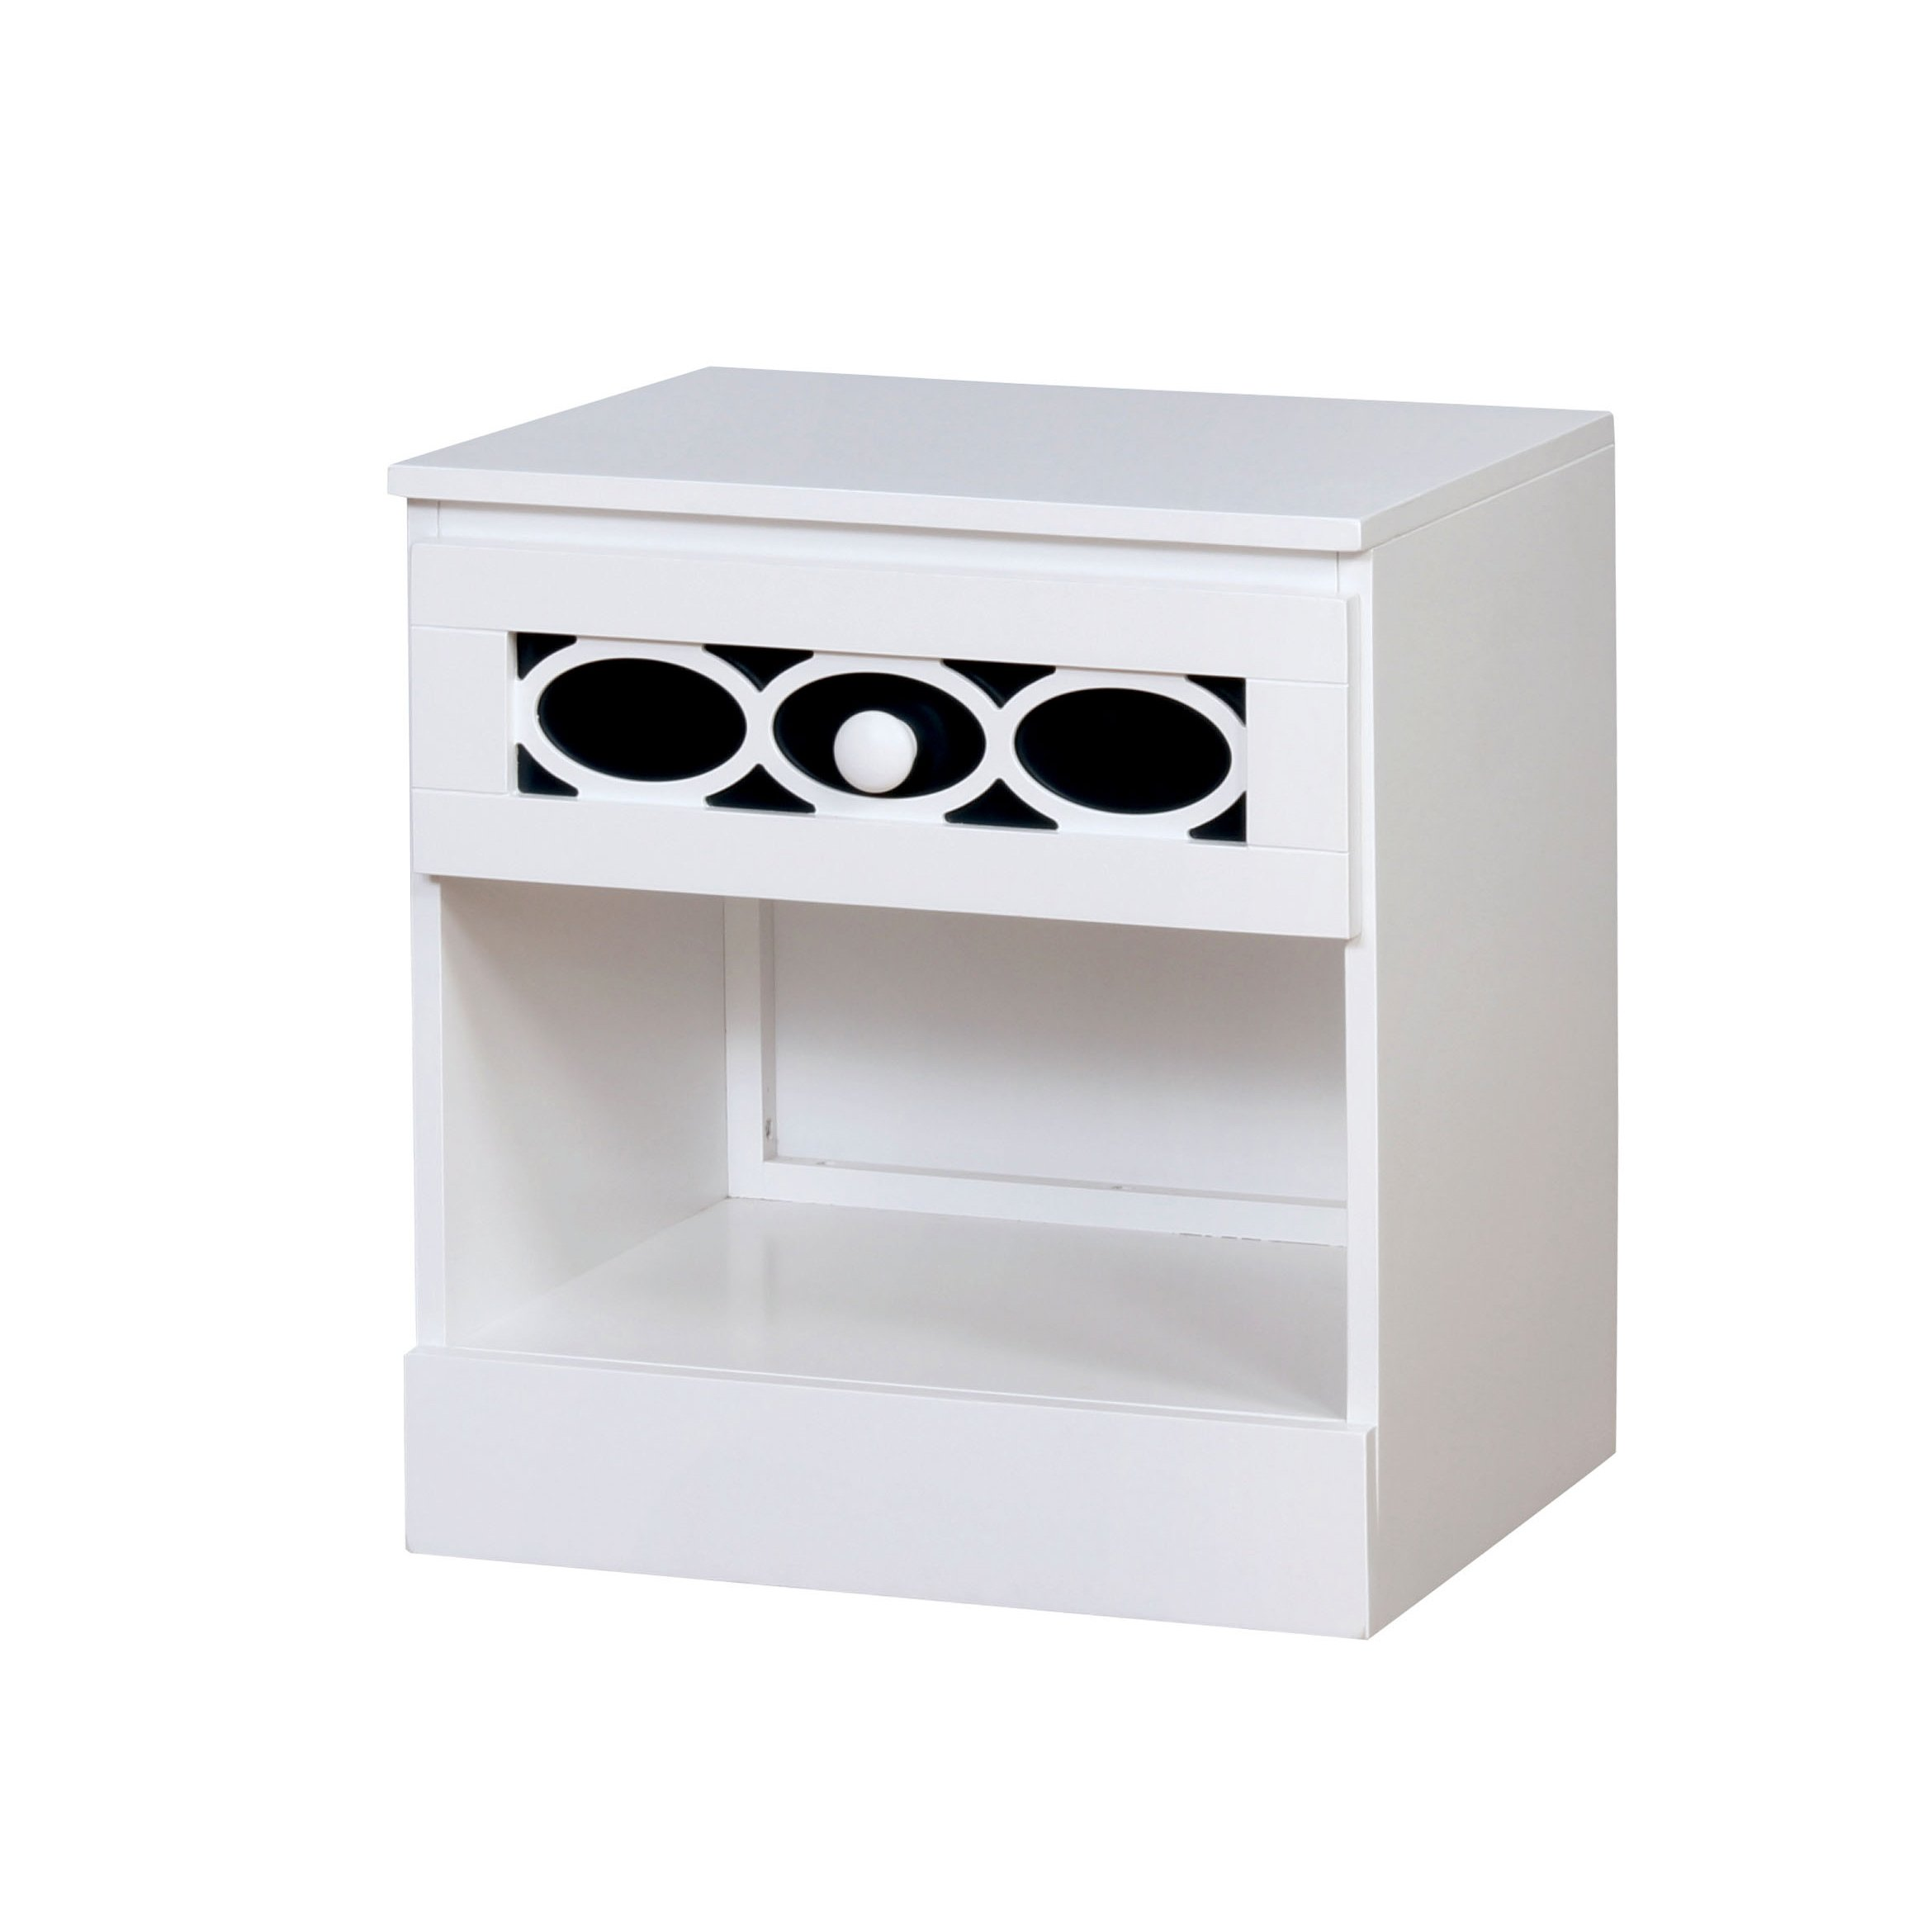 HOMES: Inside + Out IDF-7853BL-N Roka Nightstand Contemporary, Blue